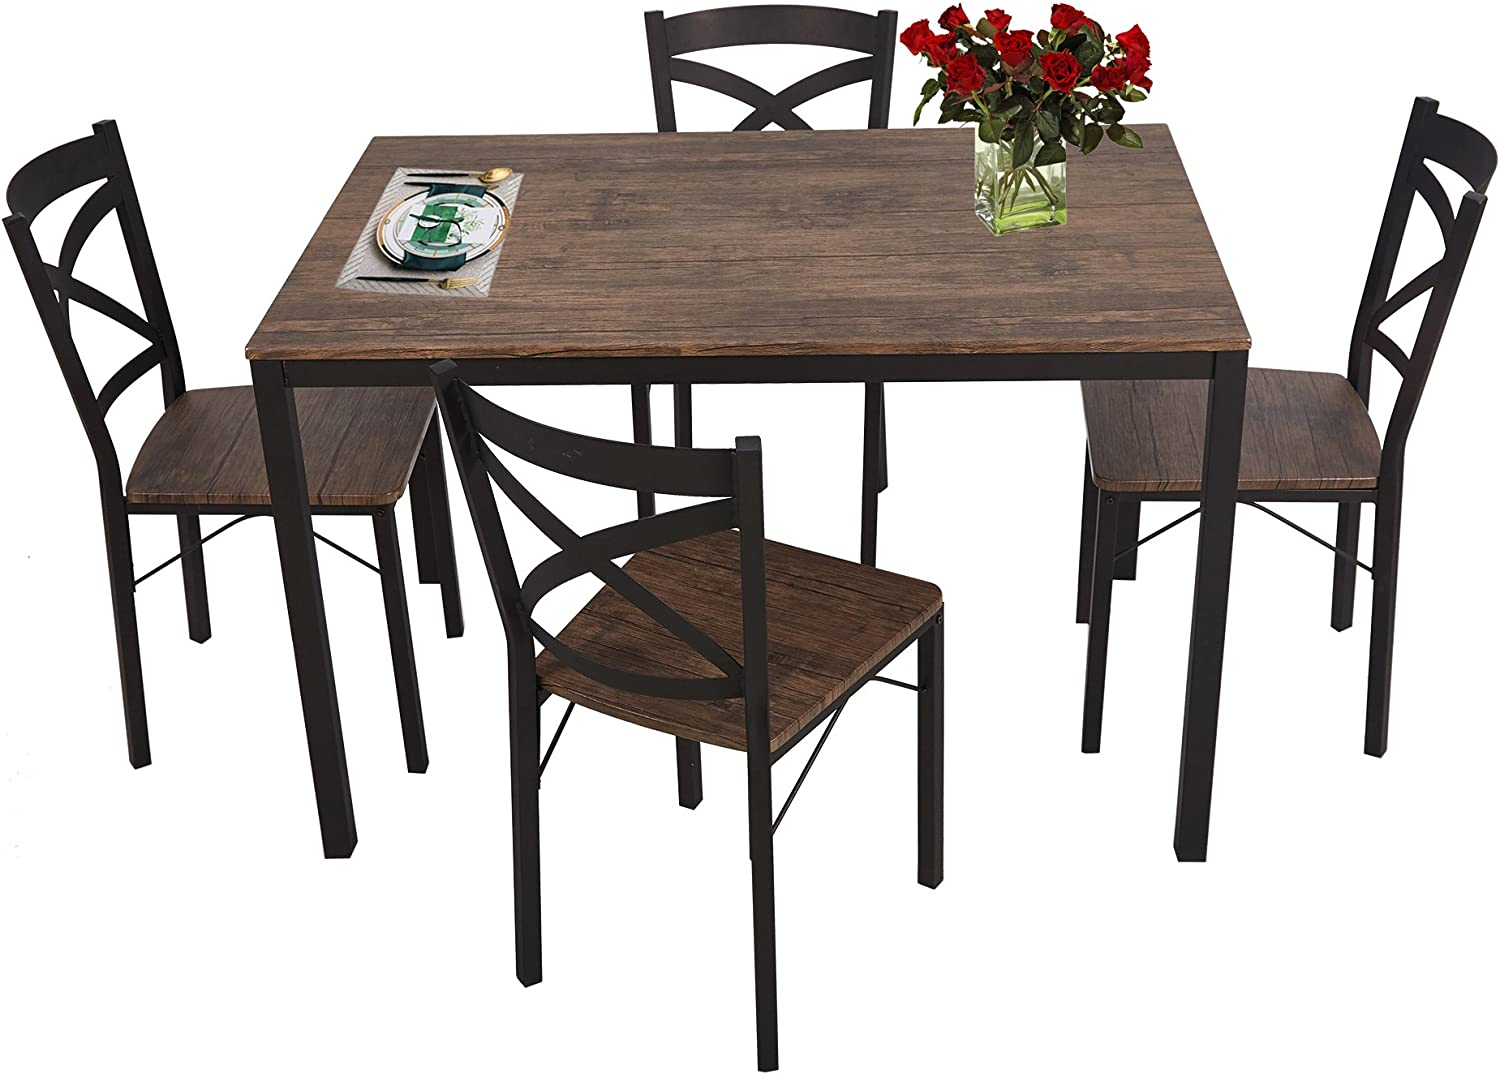 Amazon Com Luckyermore 5 Piece Dining Table Set For 4 Chairs Wood And Metal Kitchen Table Modern And Sleek Dinette Table Chair Sets